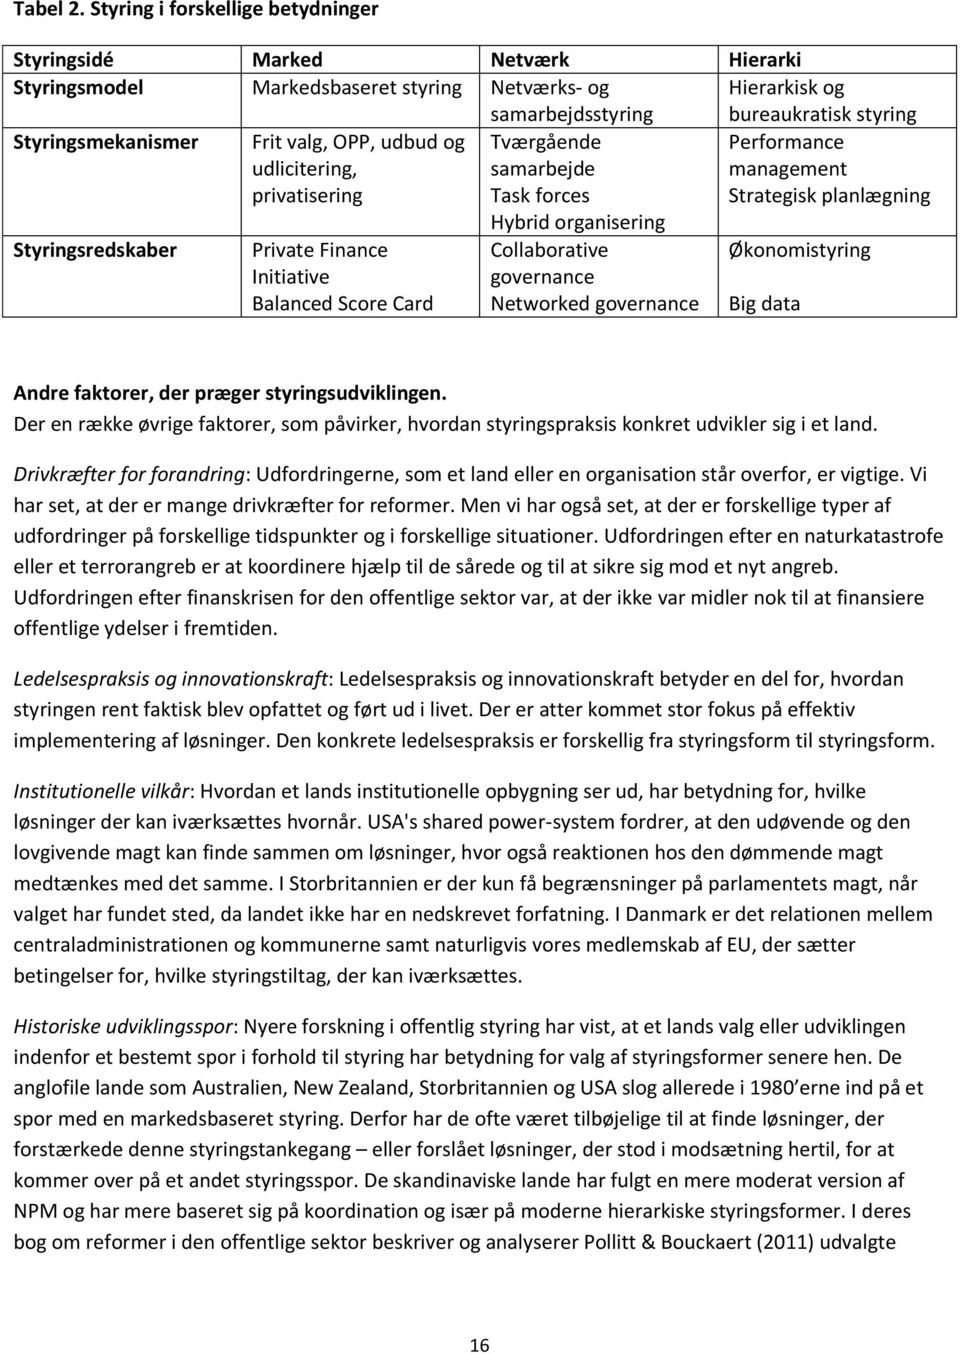 valg, OPP, udbud og udlicitering, privatisering Tværgående samarbejde Task forces Performance management Strategisk planlægning Styringsredskaber Private Finance Initiative Balanced Score Card Hybrid